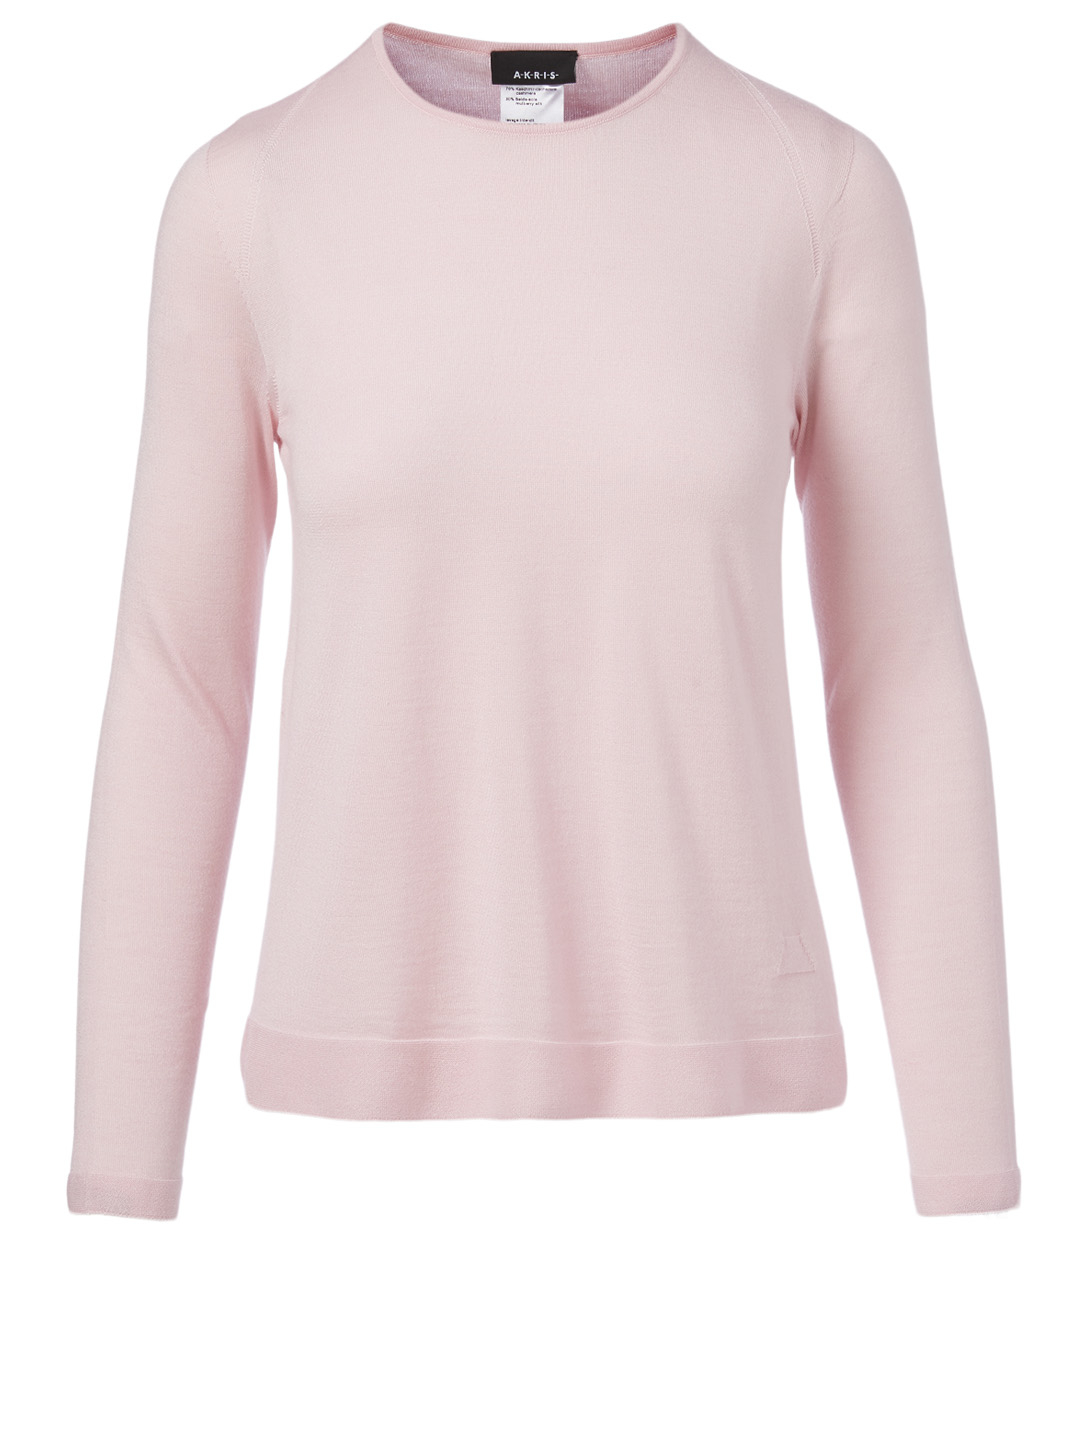 AKRIS Cashmere And Silk Sweater Women's Pink